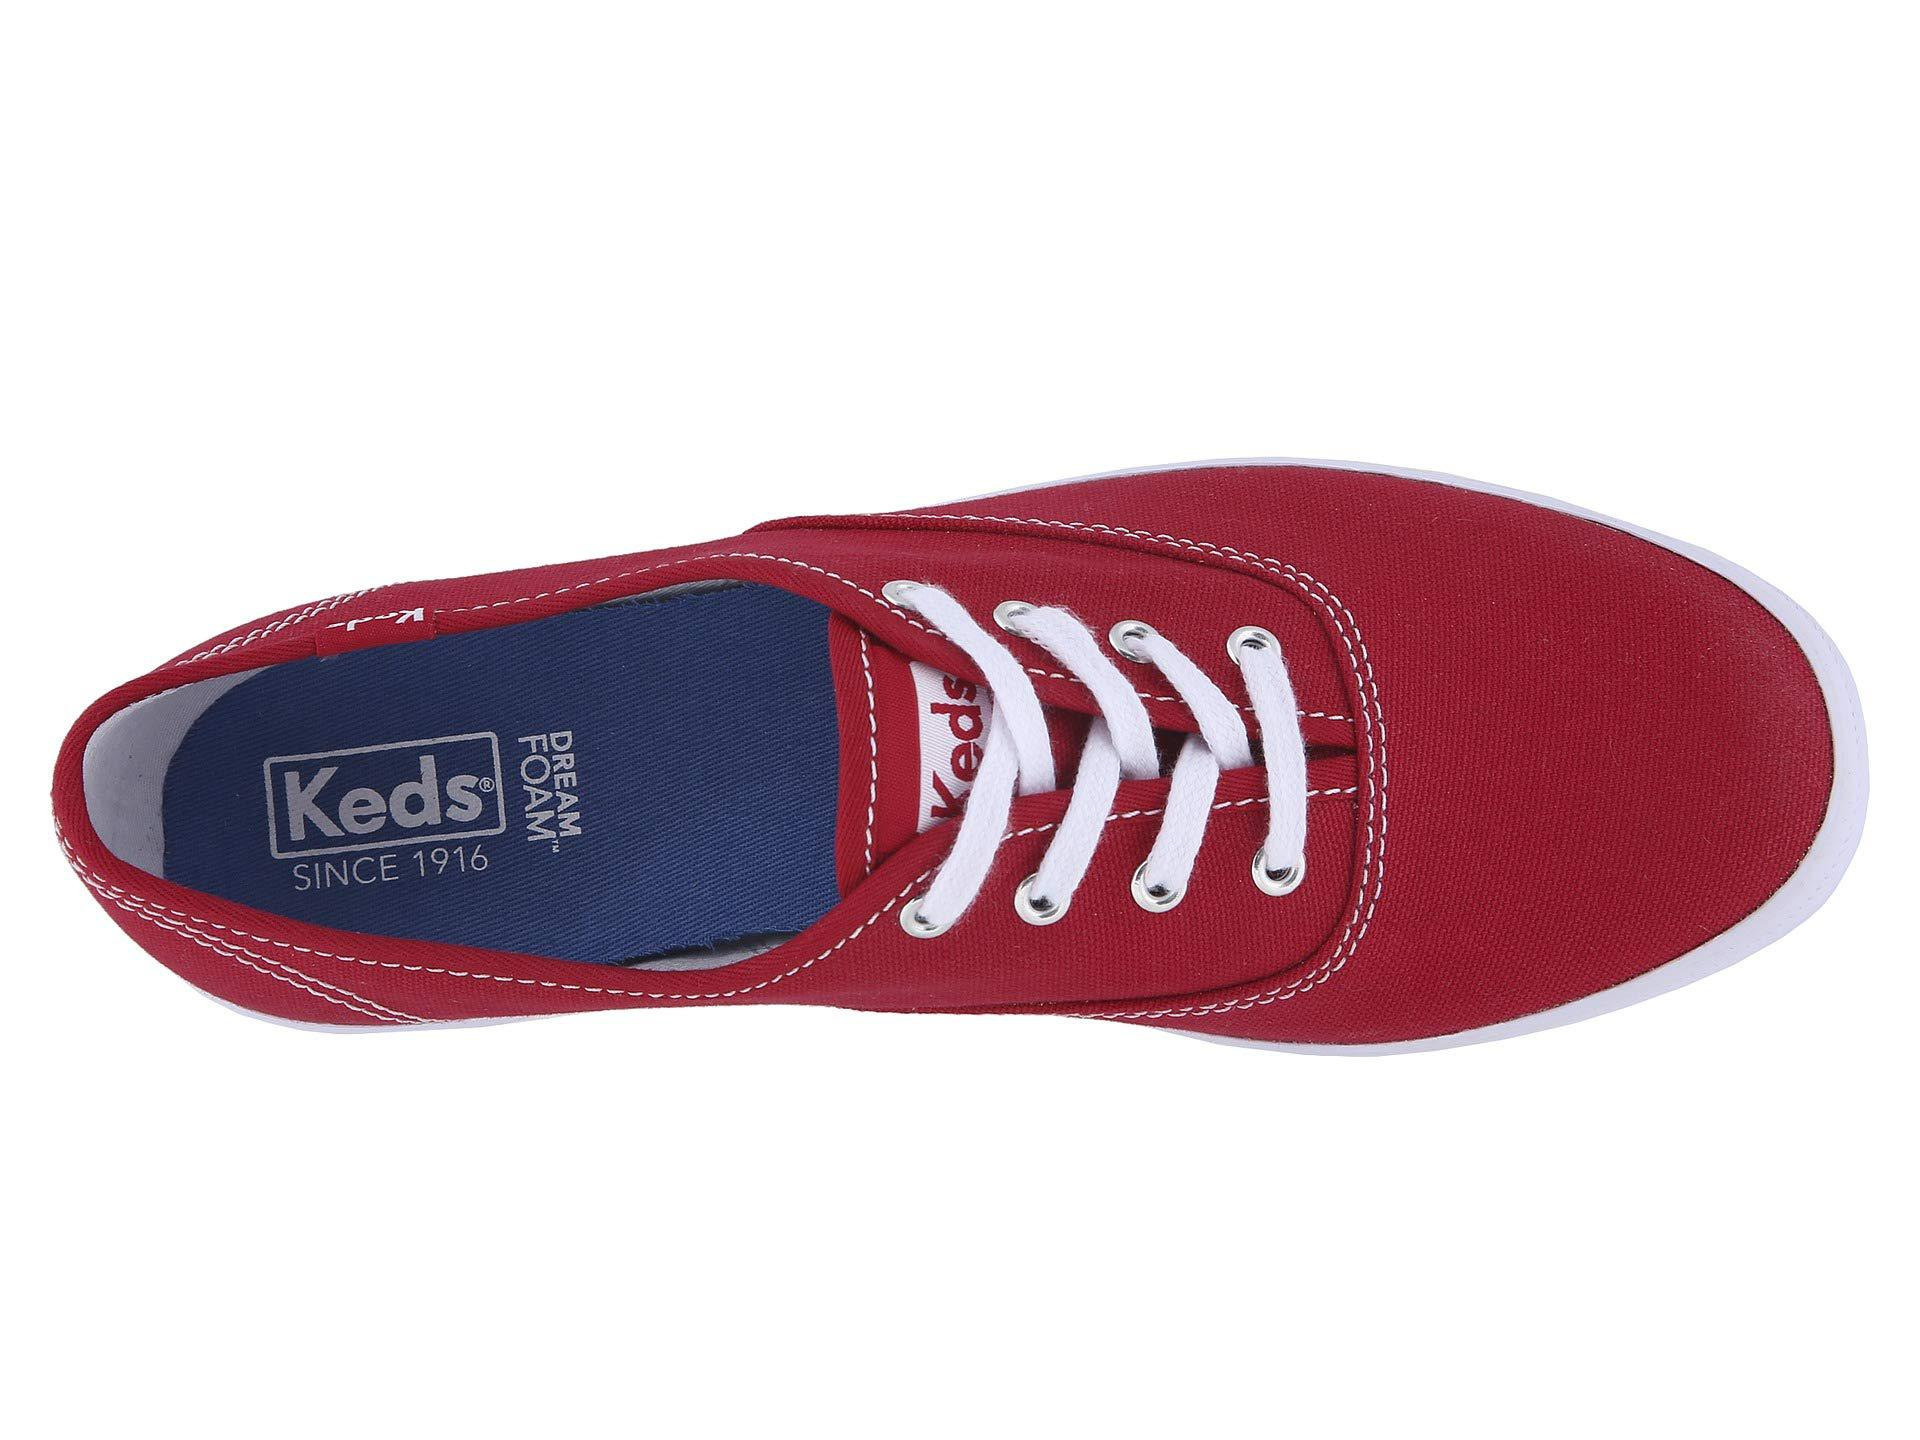 afcedfd5adbb1b Lyst - Keds Anchor (white) Women s Lace Up Casual Shoes in Red ...